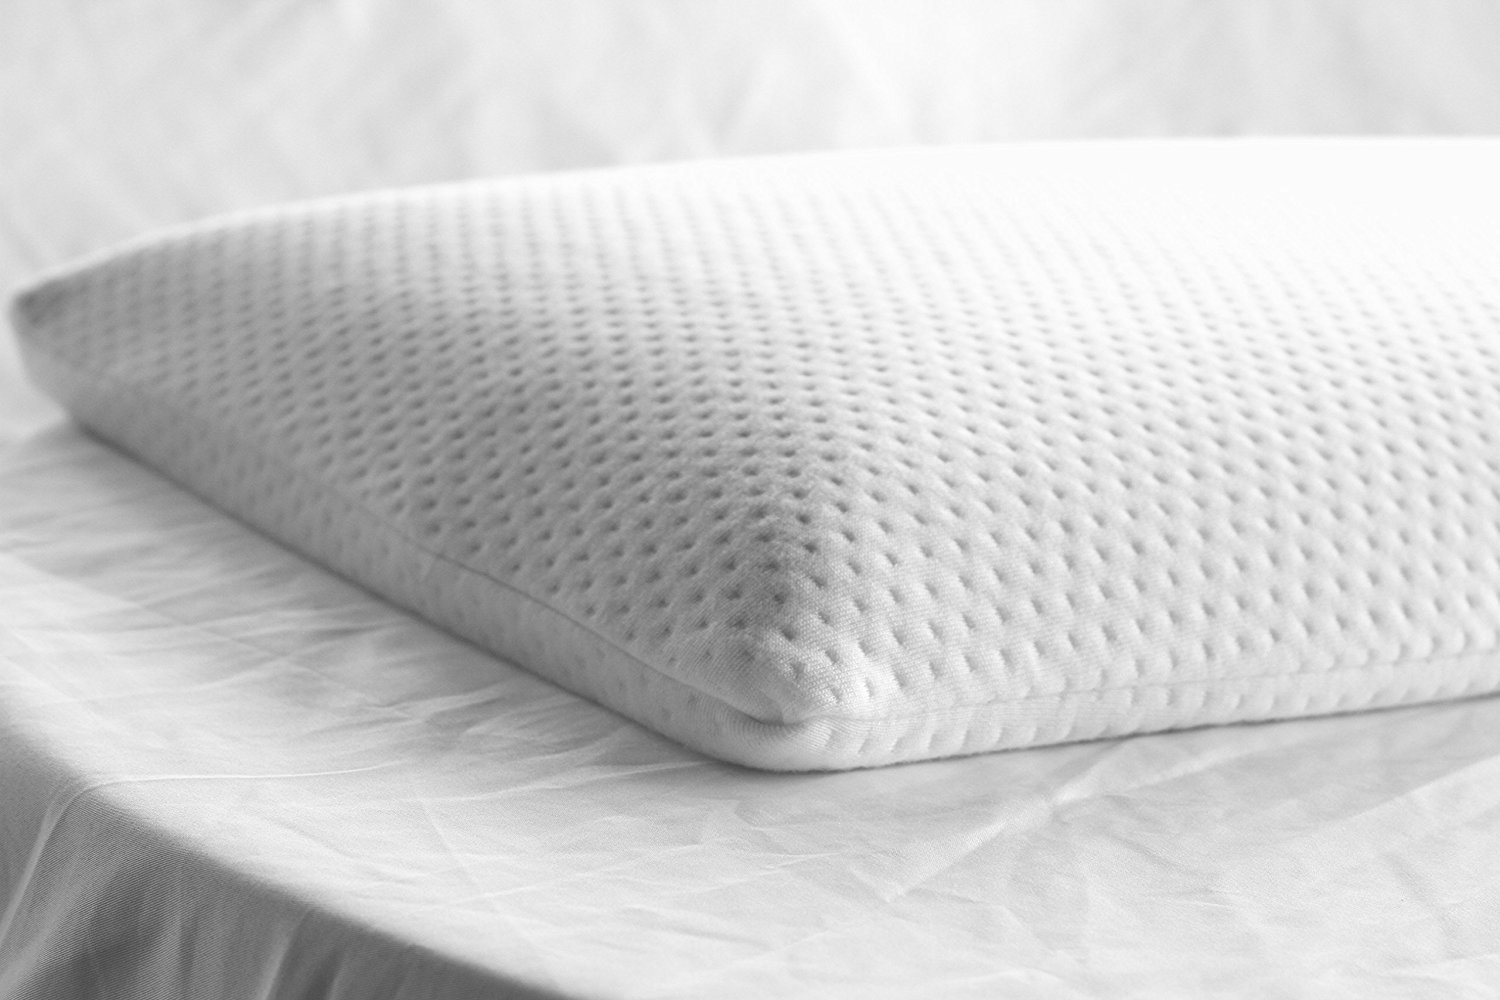 Are you suffering from chronic neck pain? Your memory foam pillow or bedding may be the culprit. In this article, our pain doctors review the best pillow for neck pain in 2020.